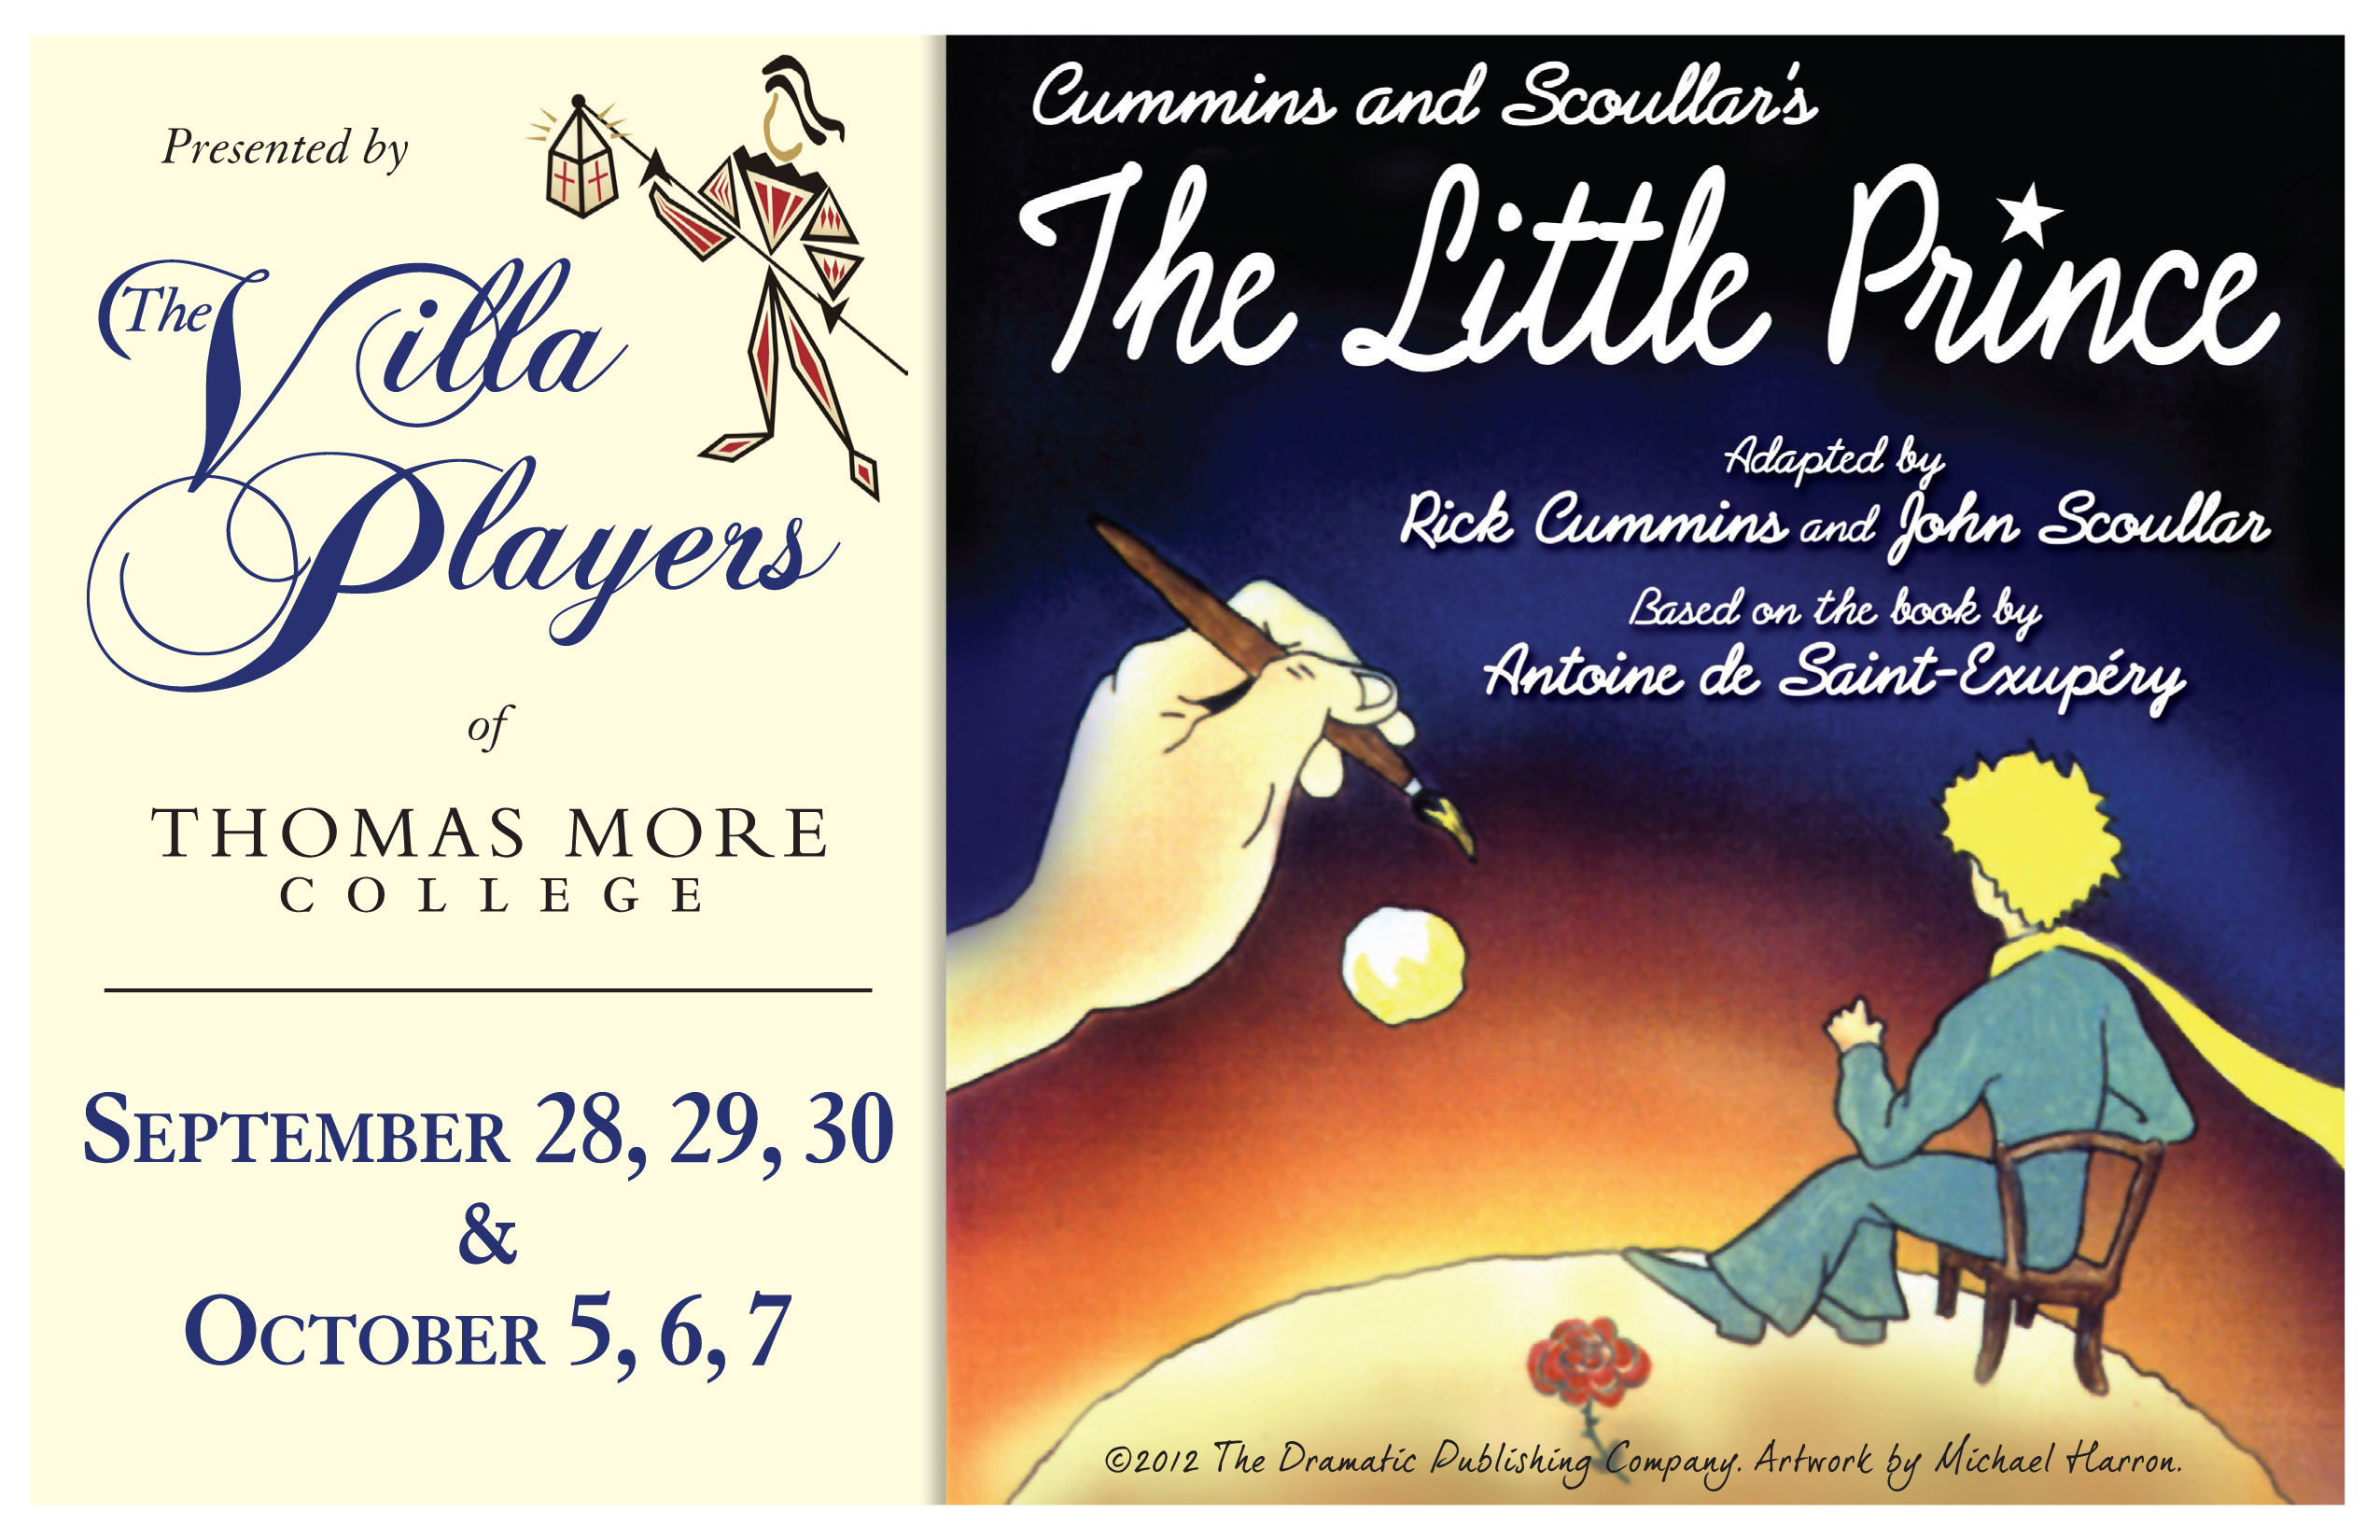 The Little Prince, Presented By The Villa Players of Thomas More College